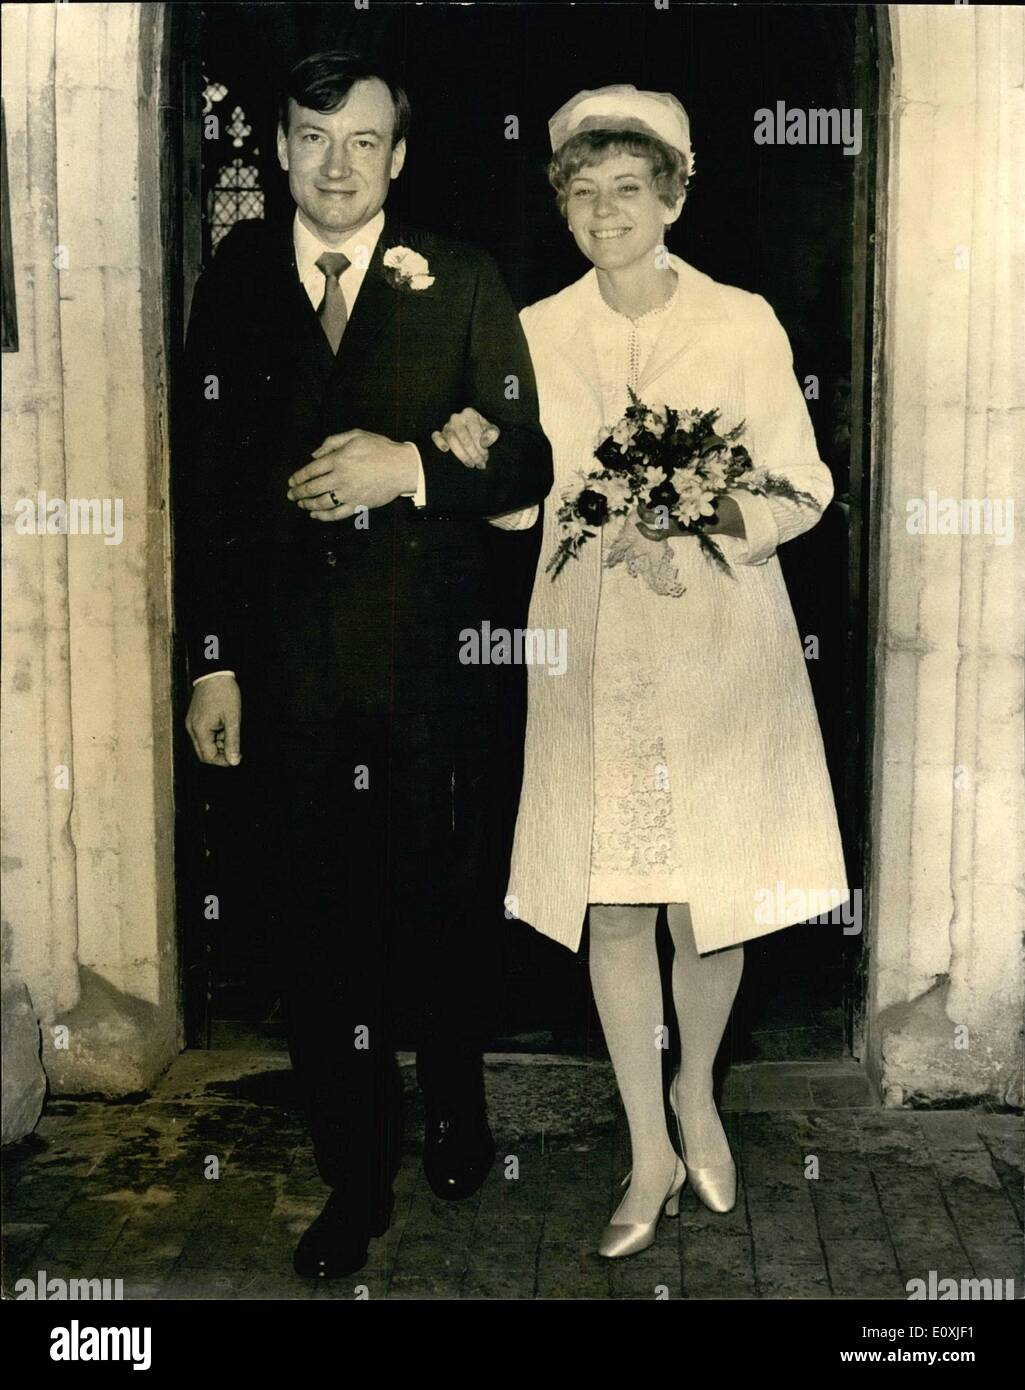 Feb. 02, 1967 - Ex-Priest Weds: Mr Charles Davis, 43, the former Roman Catholic Priest who was professor of Theology at Heythrop College Oxford-but has now been elected to a visiting fellowship at Clare College, Cambridge - was married this afternoon to Miss Florence Henderson, 36, a former Roman Catholic, and who is American, at all Saints Haslingfield, near Cambridge, the village's the village's Anglican Parish Church. Mr. Davis renounced his priesthood and left the church just before he was to go to Rome to take part in unity talks between the Anglican and Roman Catholic Churches - Stock Image